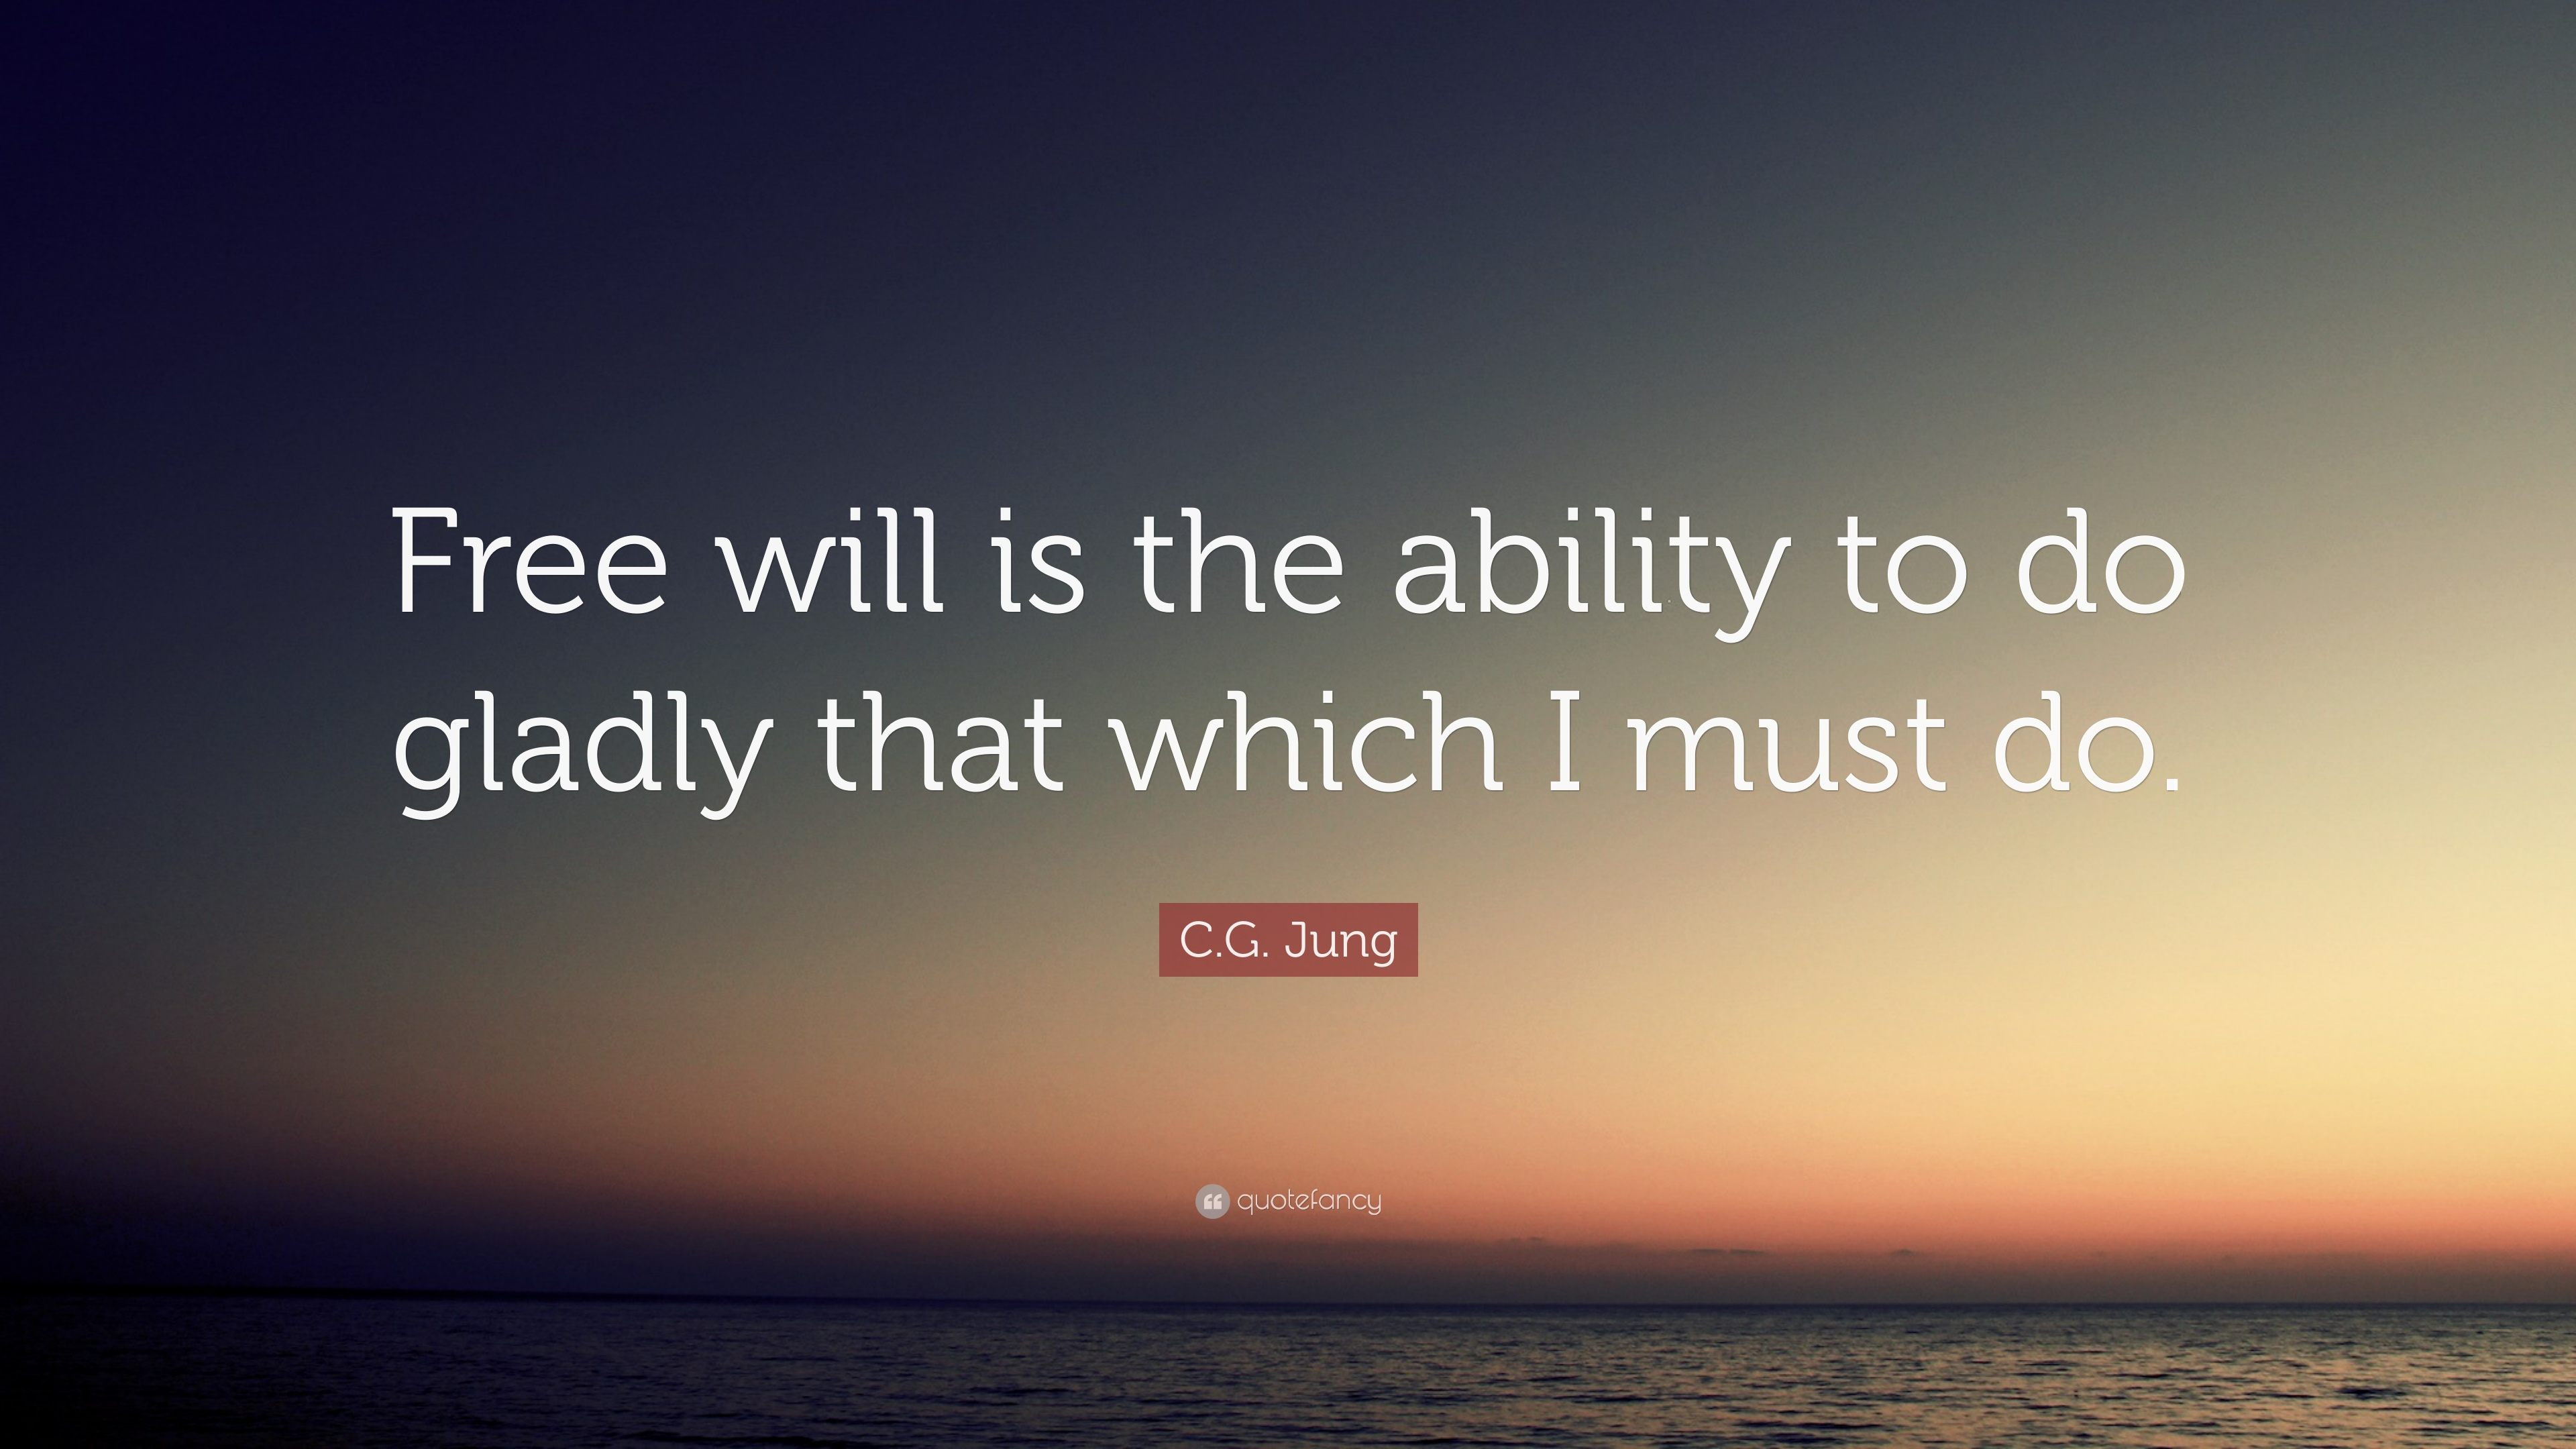 C G Jung Quote Free Will Is The Ability To Do Gladly That Which